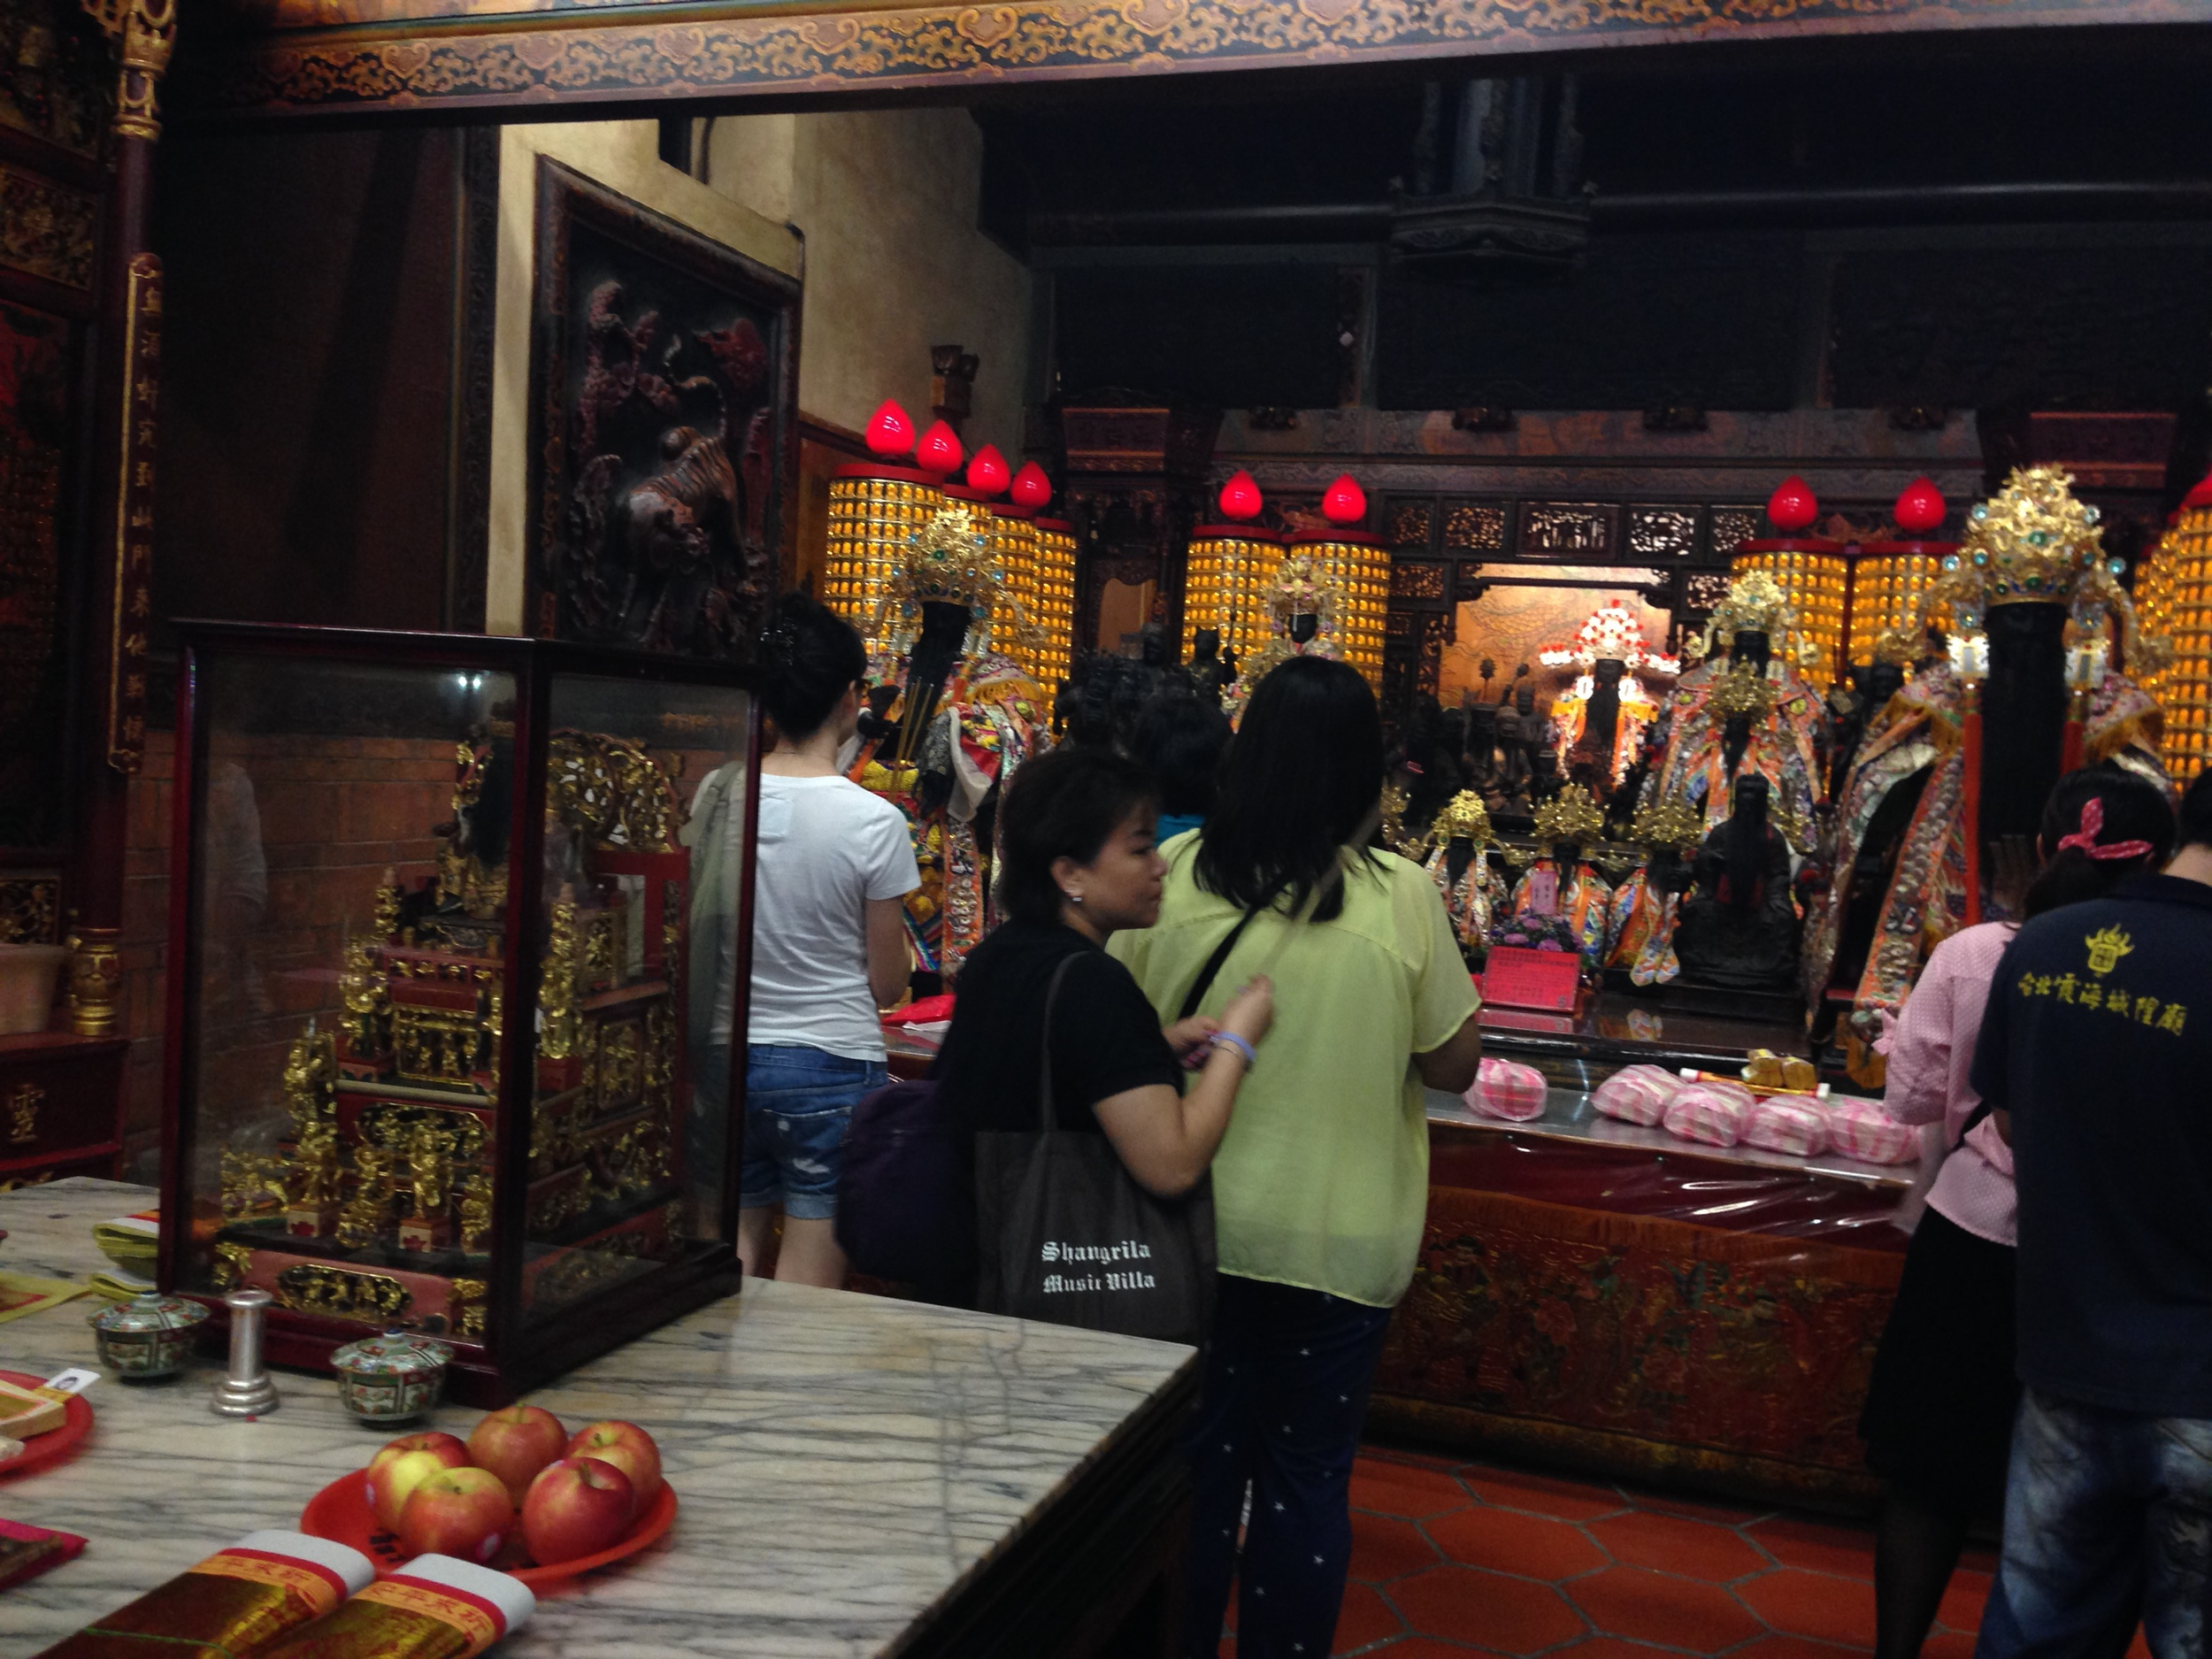 Taipei Xia-Hai City God Temple 台北霞海城隍廟   http://www.dadaocheng.tw/taipei-xia-hai-city-god-temple/2